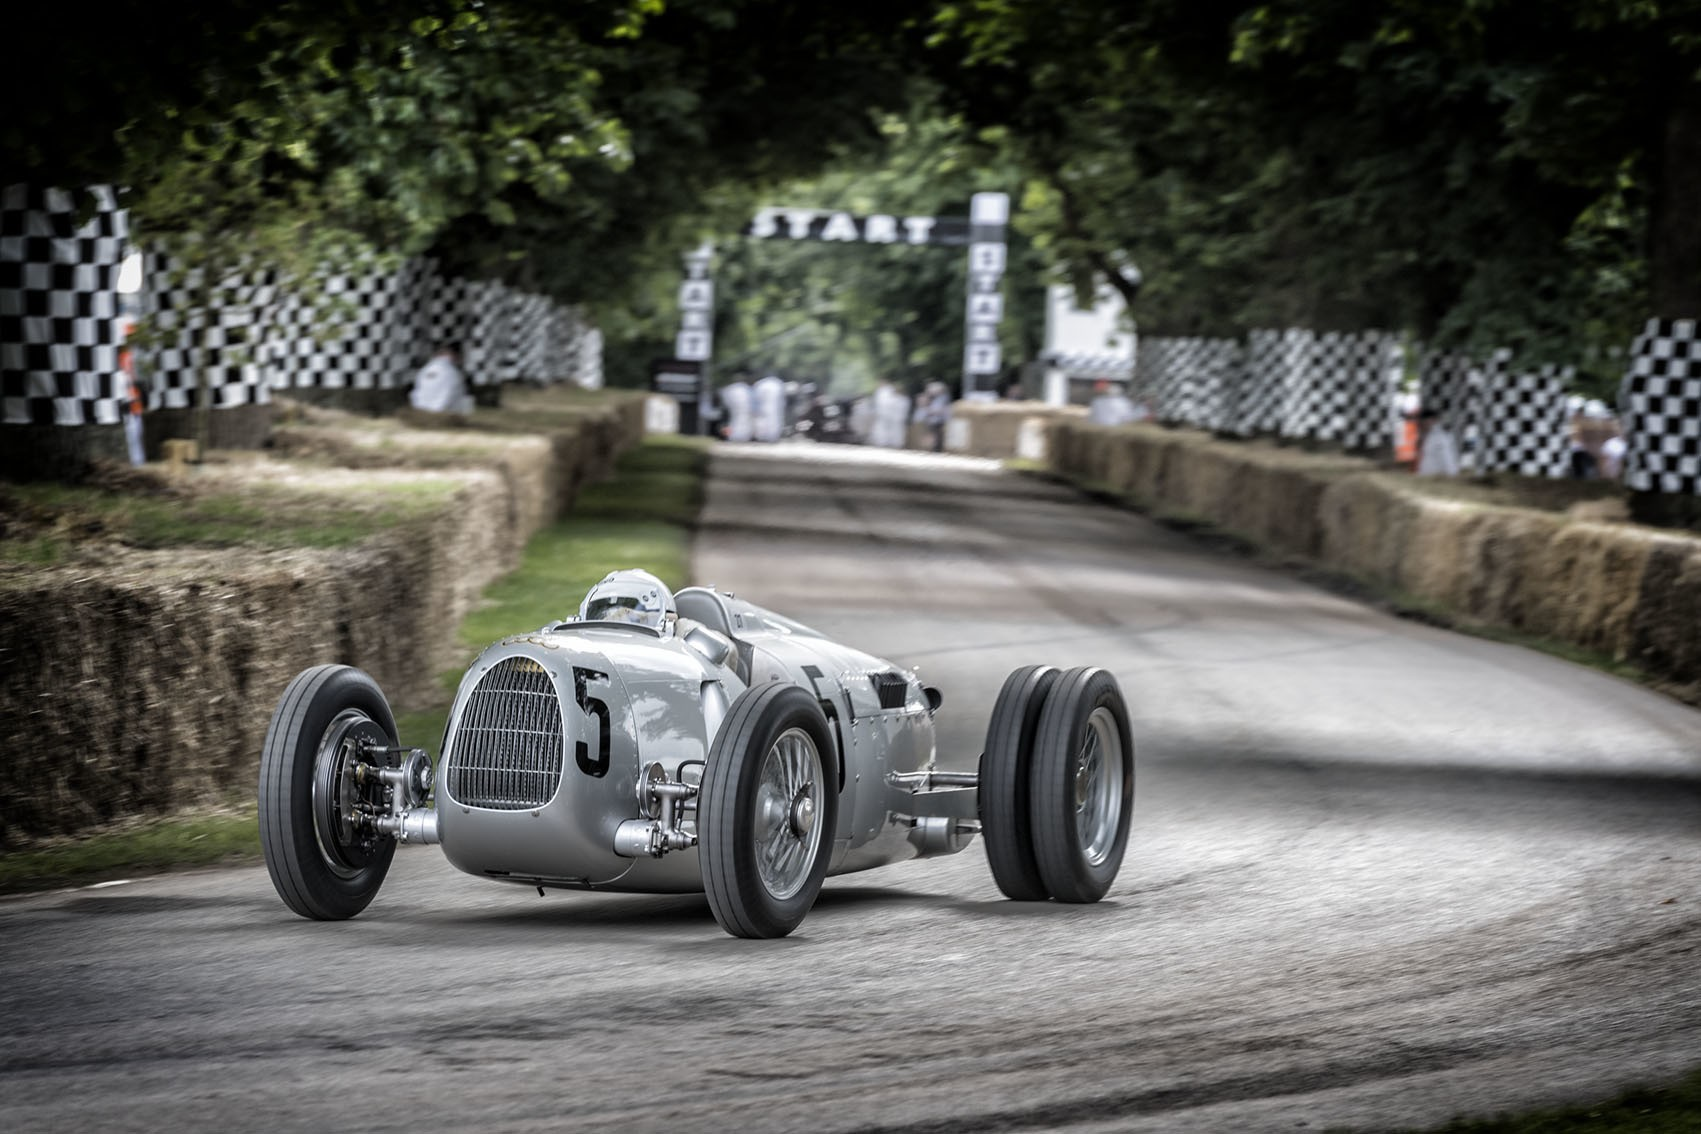 Auto Union Silver Arrow legende uit 1936